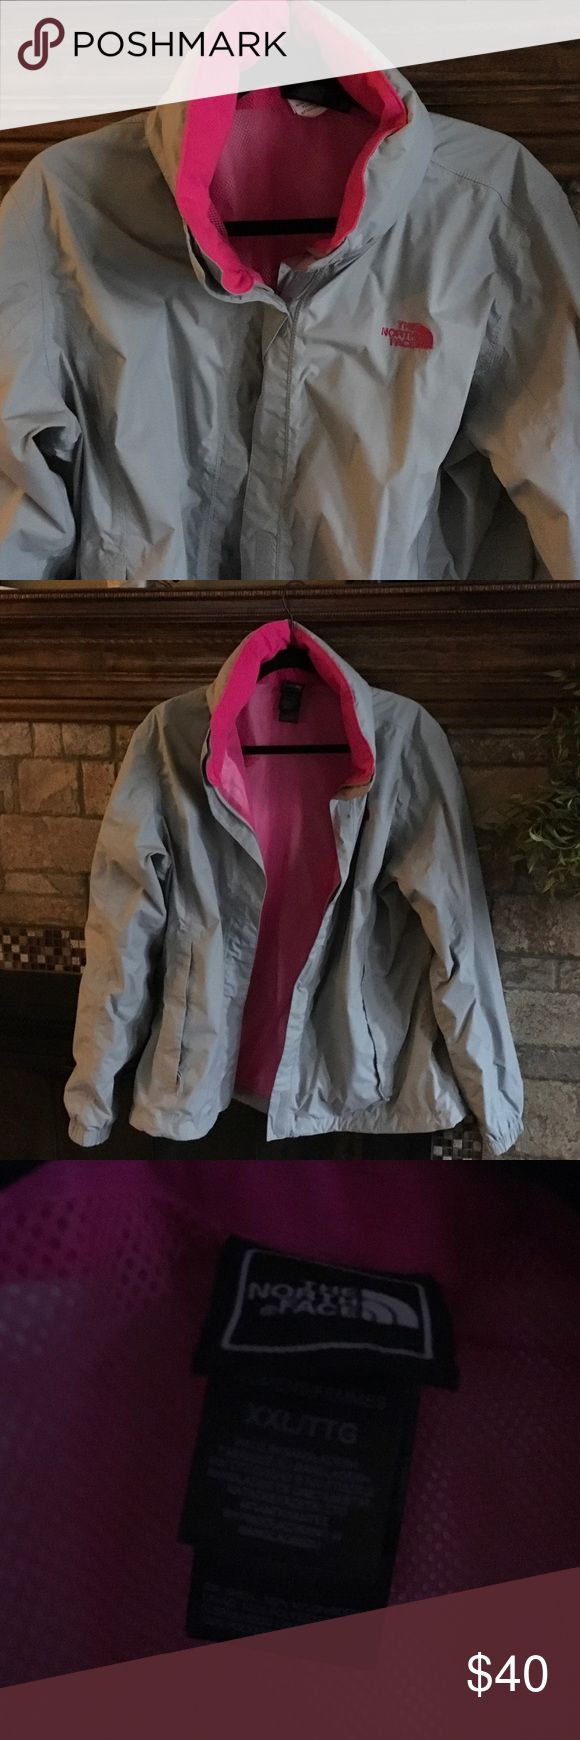 North face rain and wind breaker grey/pink XXL The north face wind and rain jacket ladies XXL in grey and pink. Hood is stashed away in the collar. Zips and Velcro closure. Worn on one vacation. The North Face Jackets & Coats